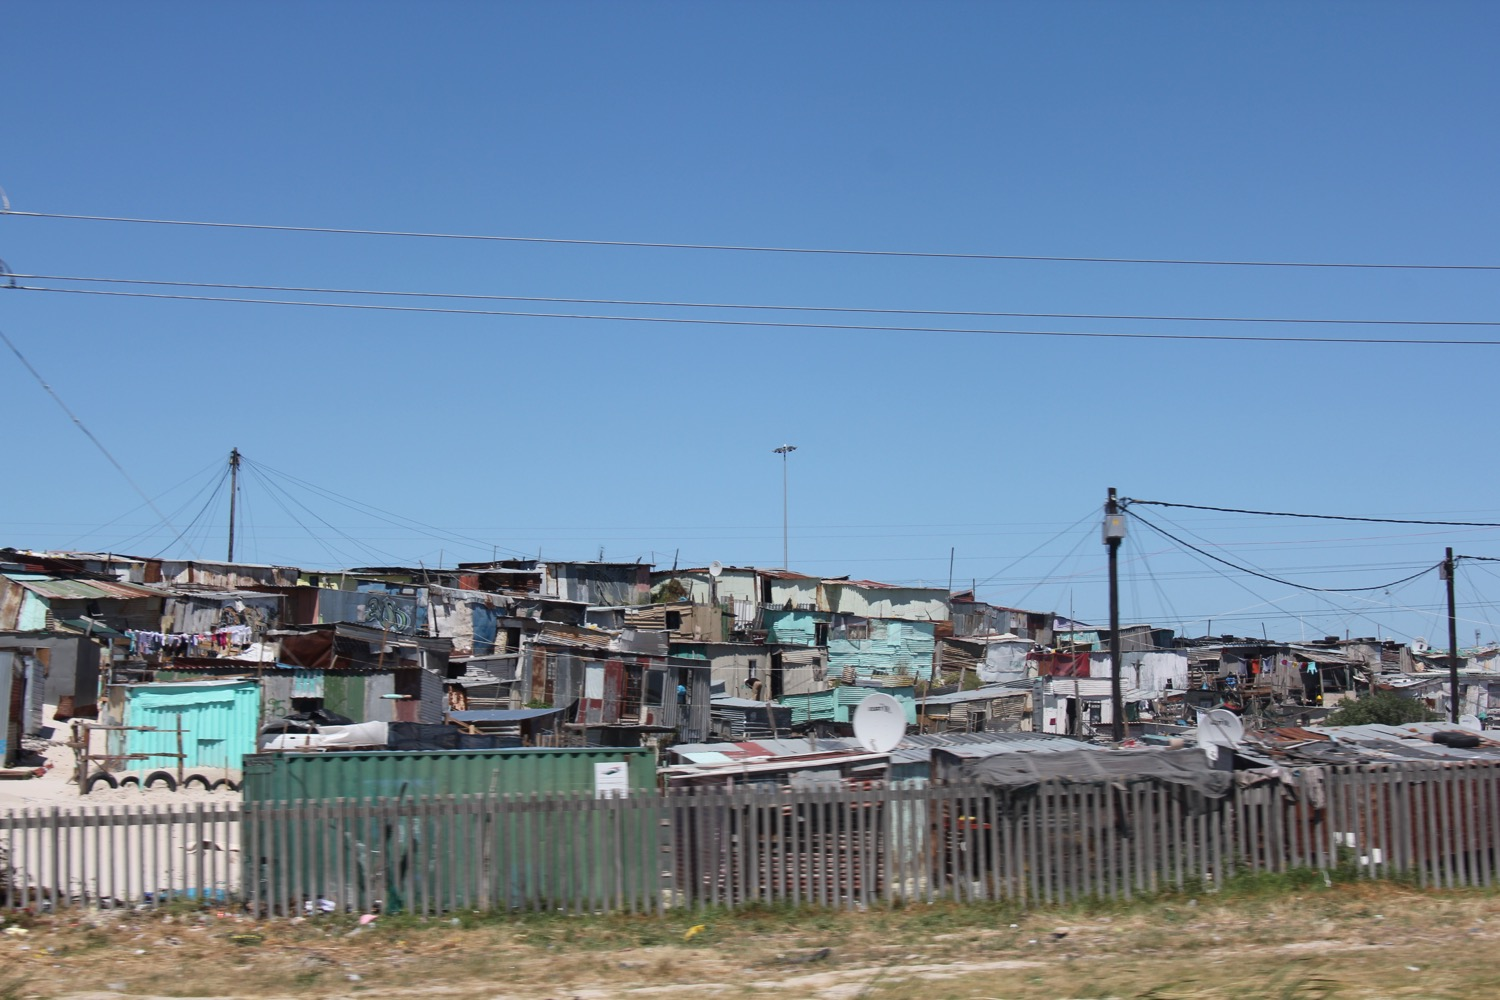 Cape Town Poverty - 50